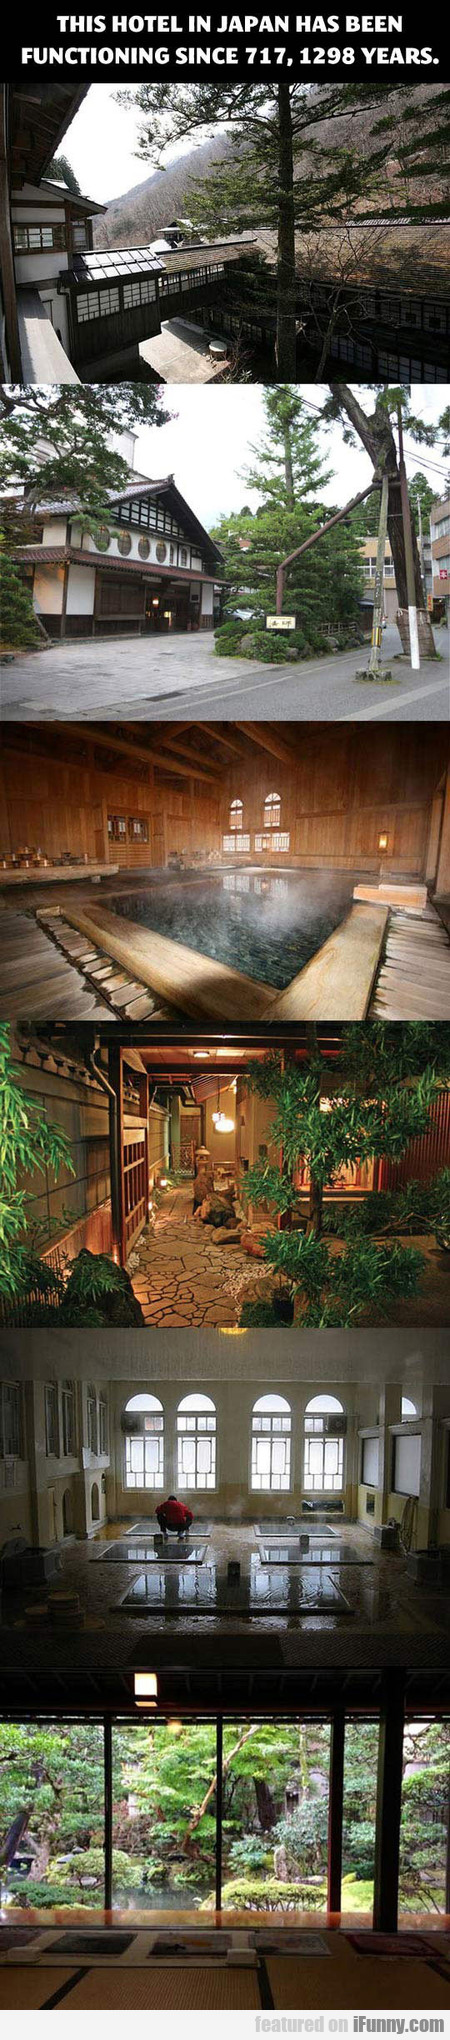 This Hotel In Japan Has Been Functioning Since 717